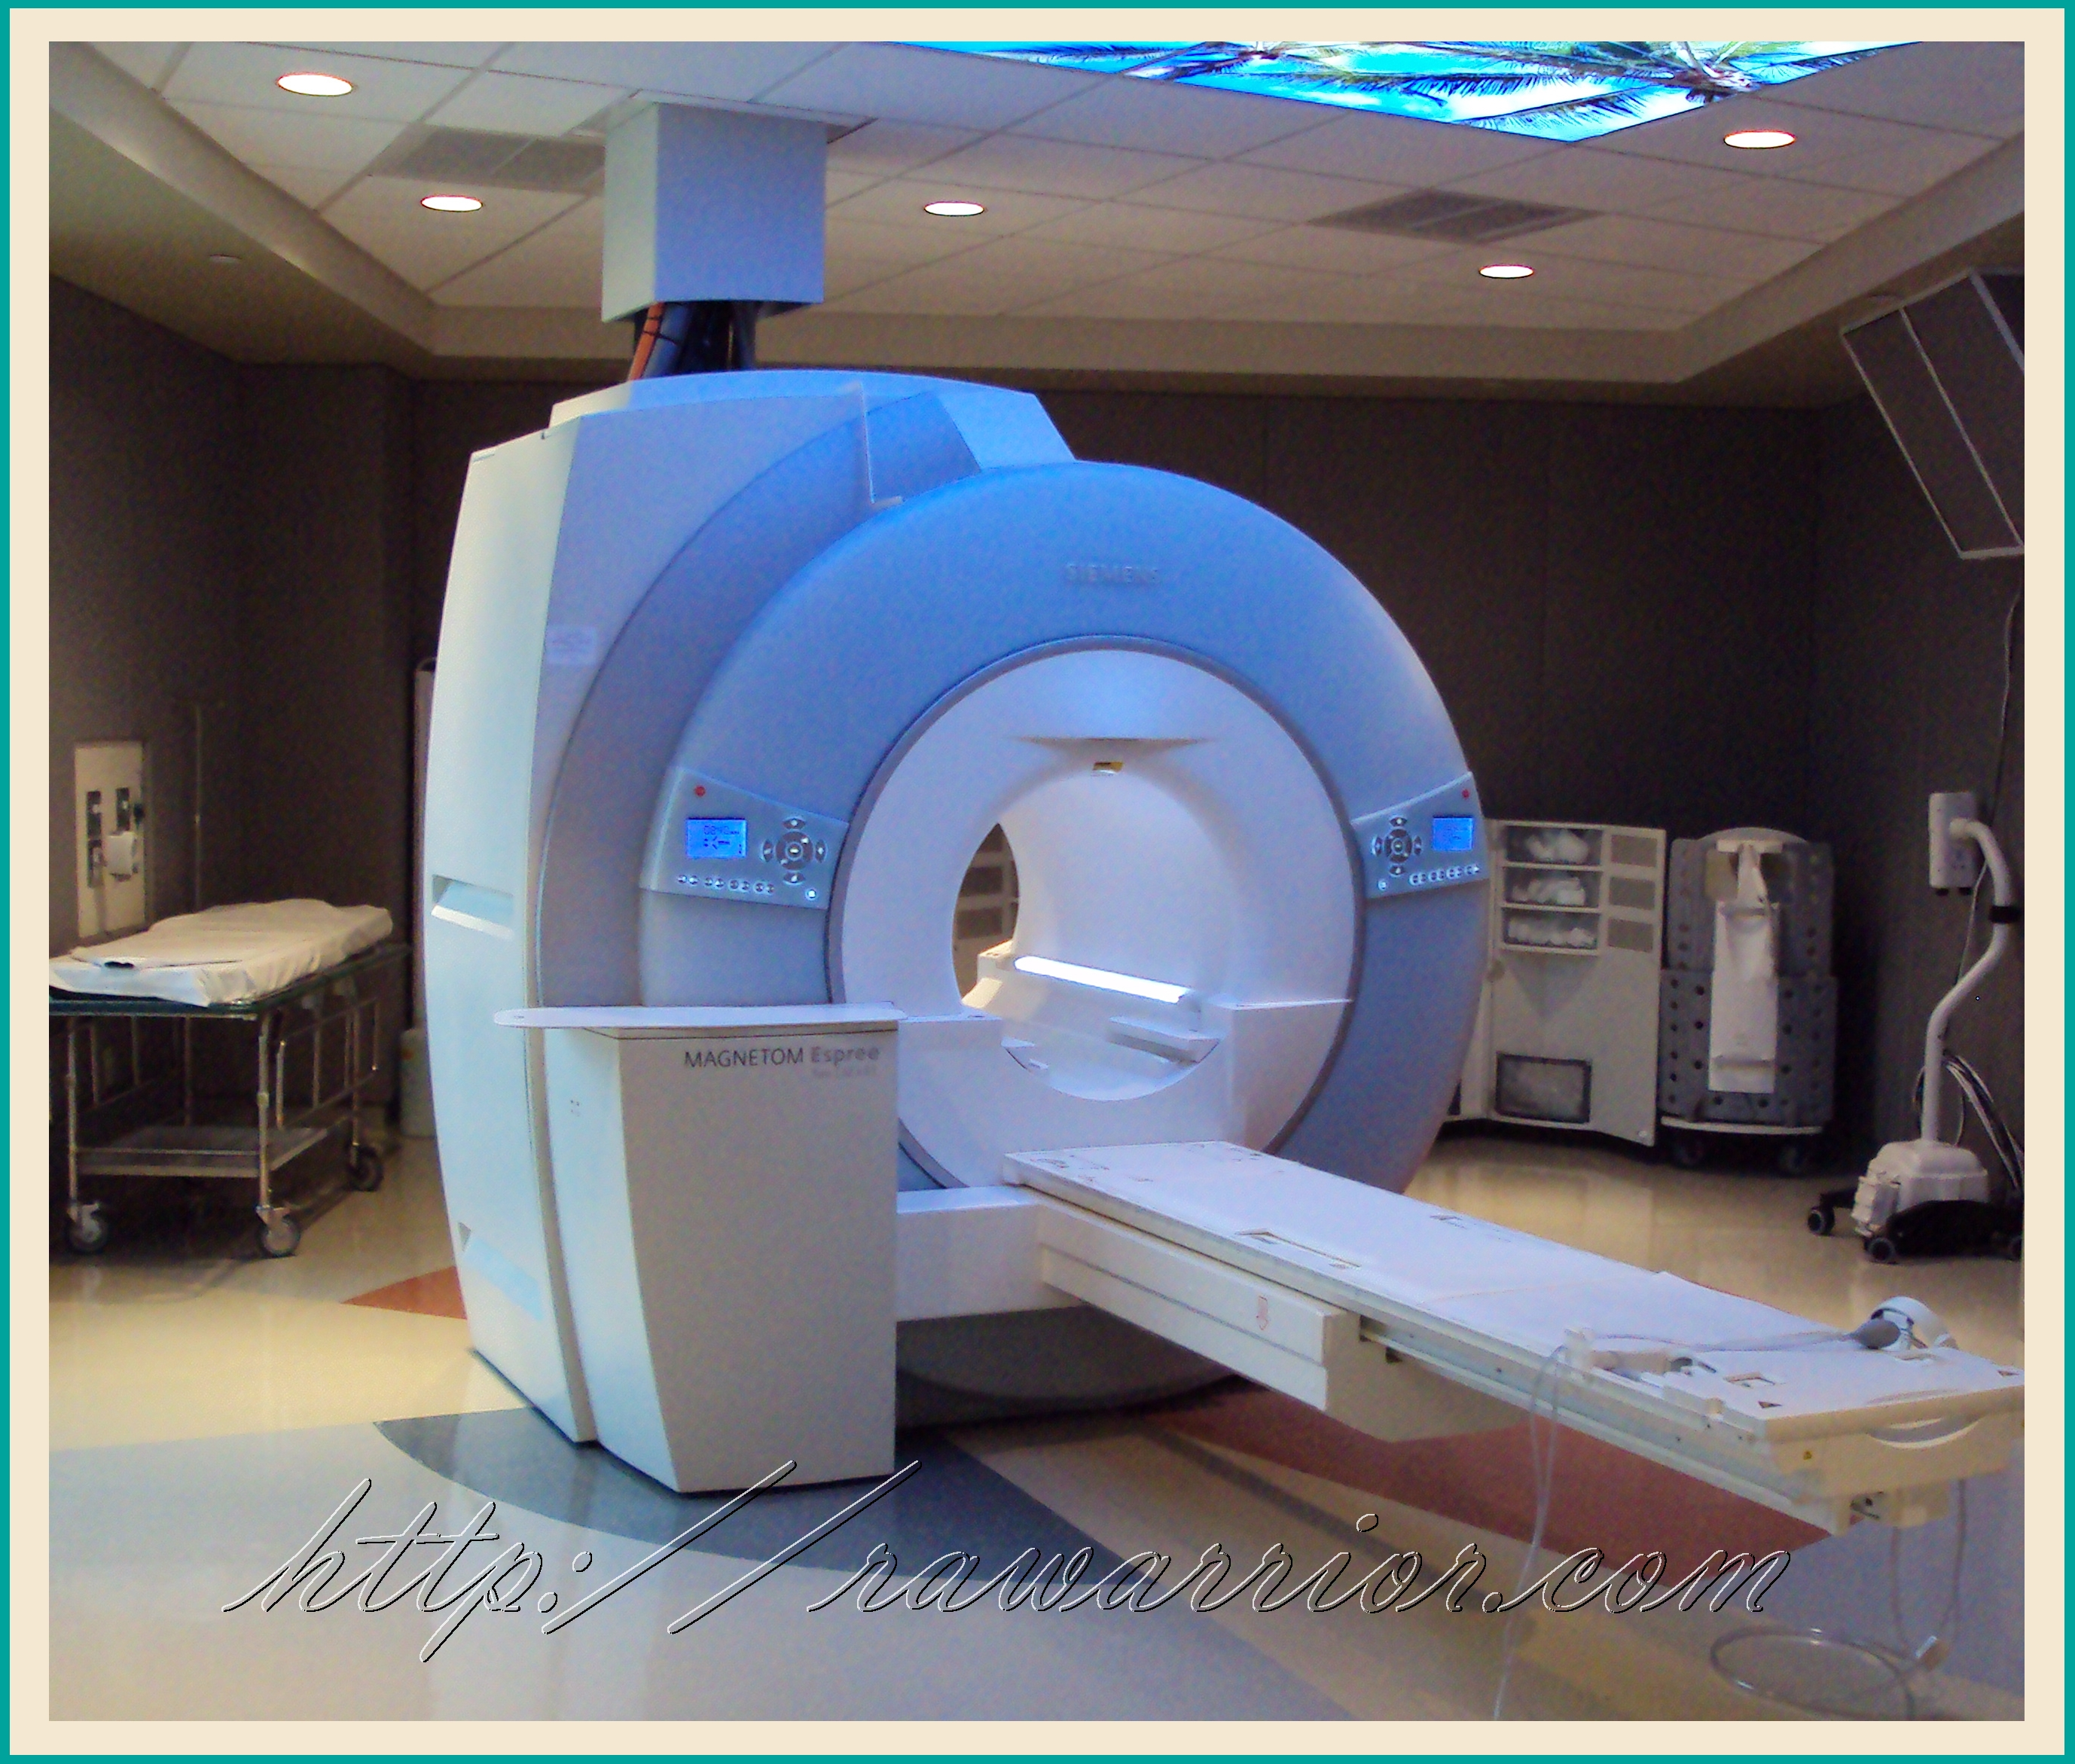 inside mri machine